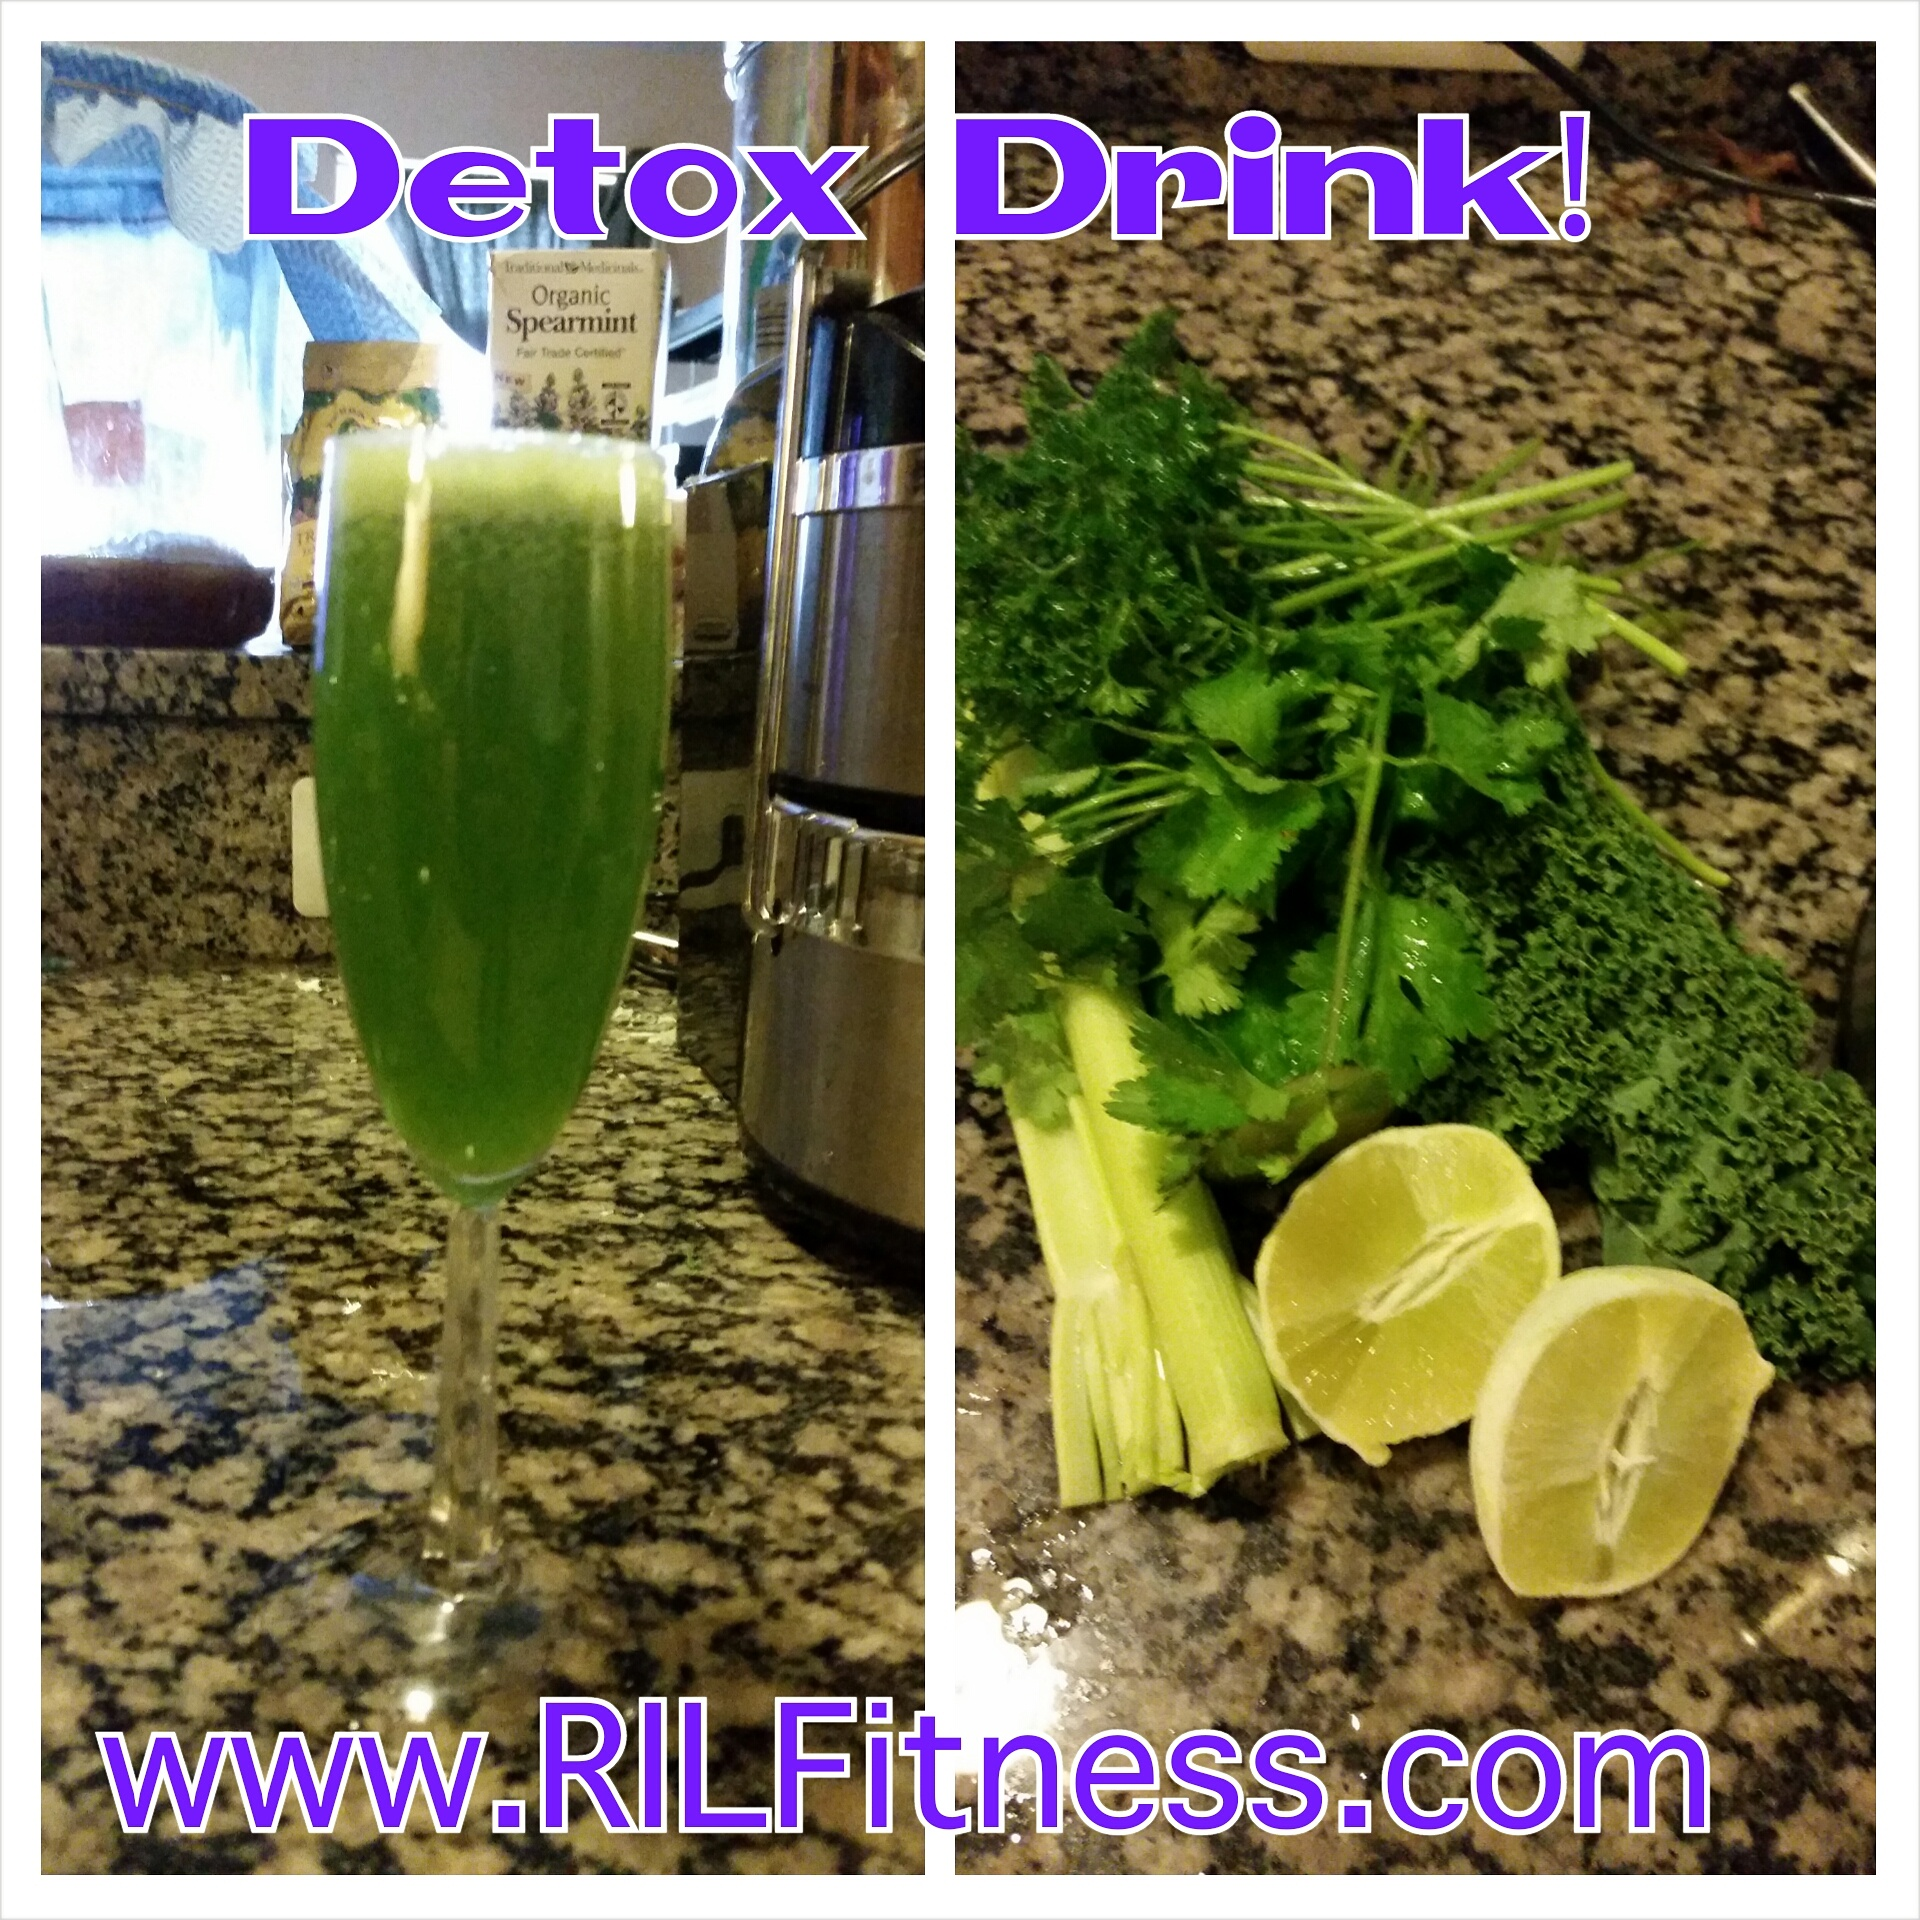 Detox Drink! Journal Entry 2 Day 1